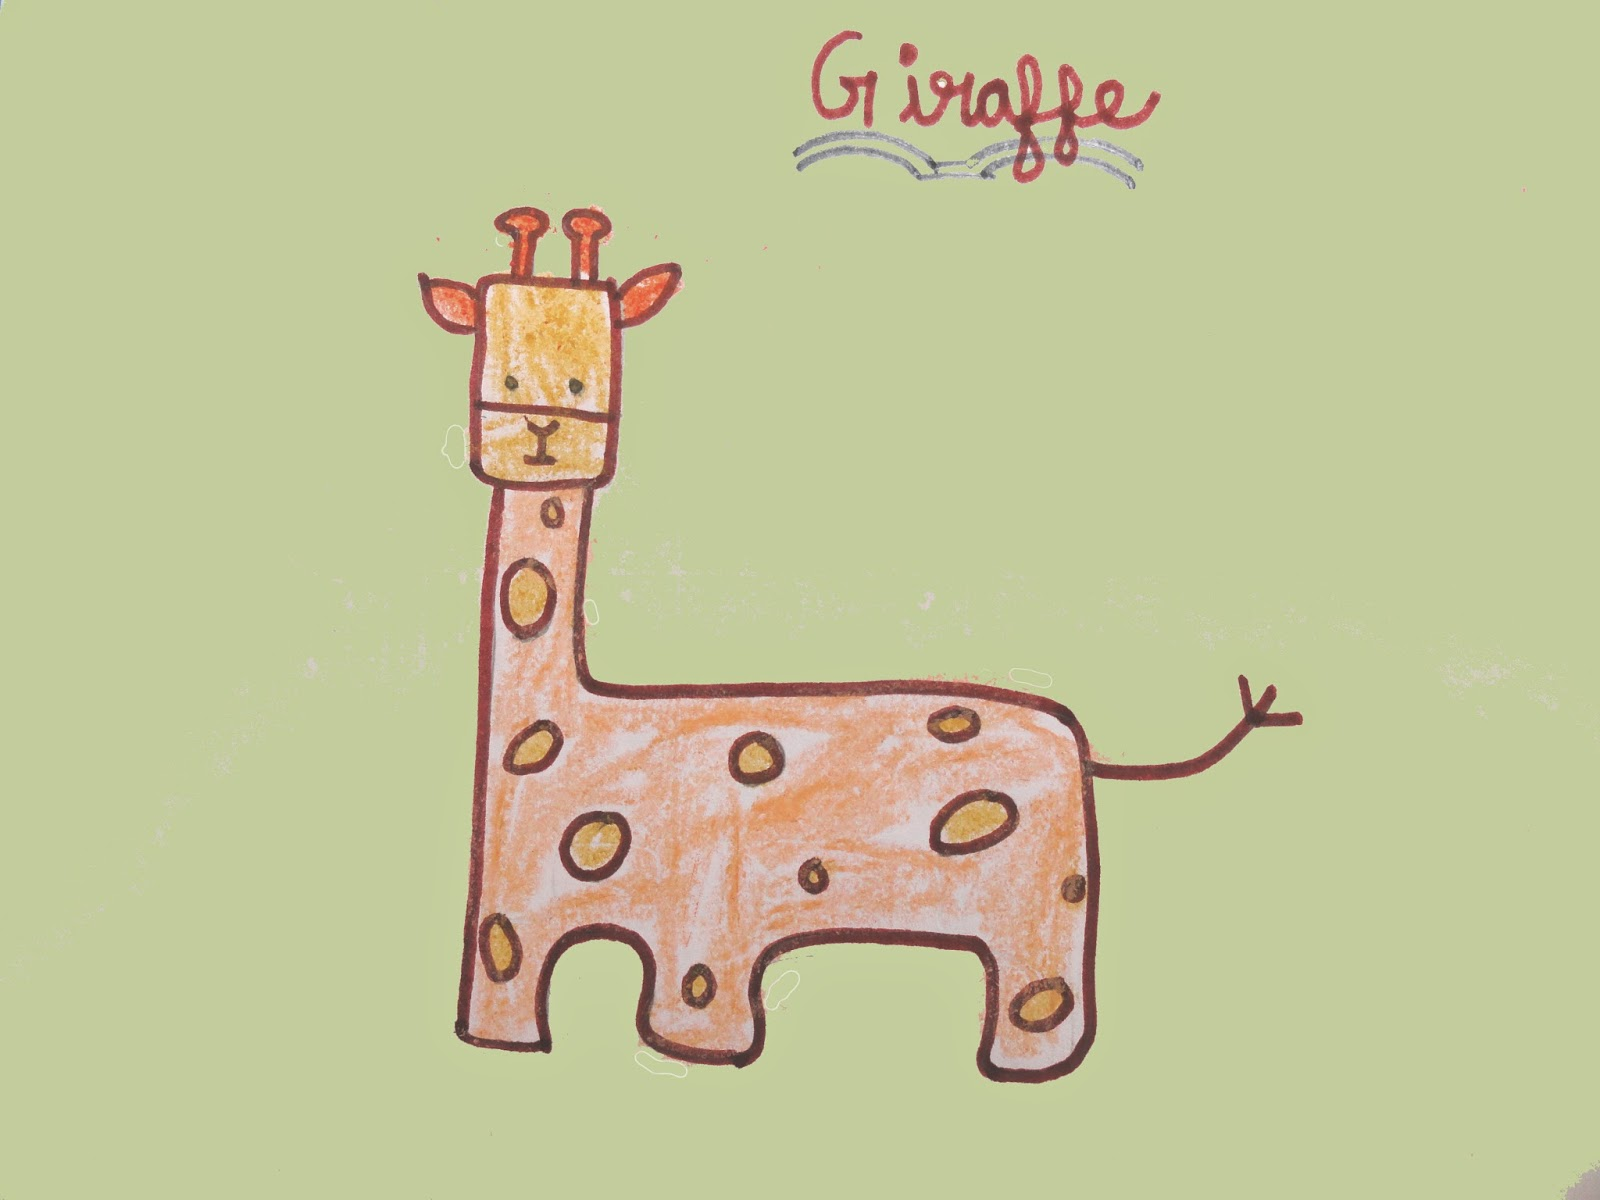 Line Drawing Giraffe : Giraffe drawing easy at getdrawings.com free for personal use